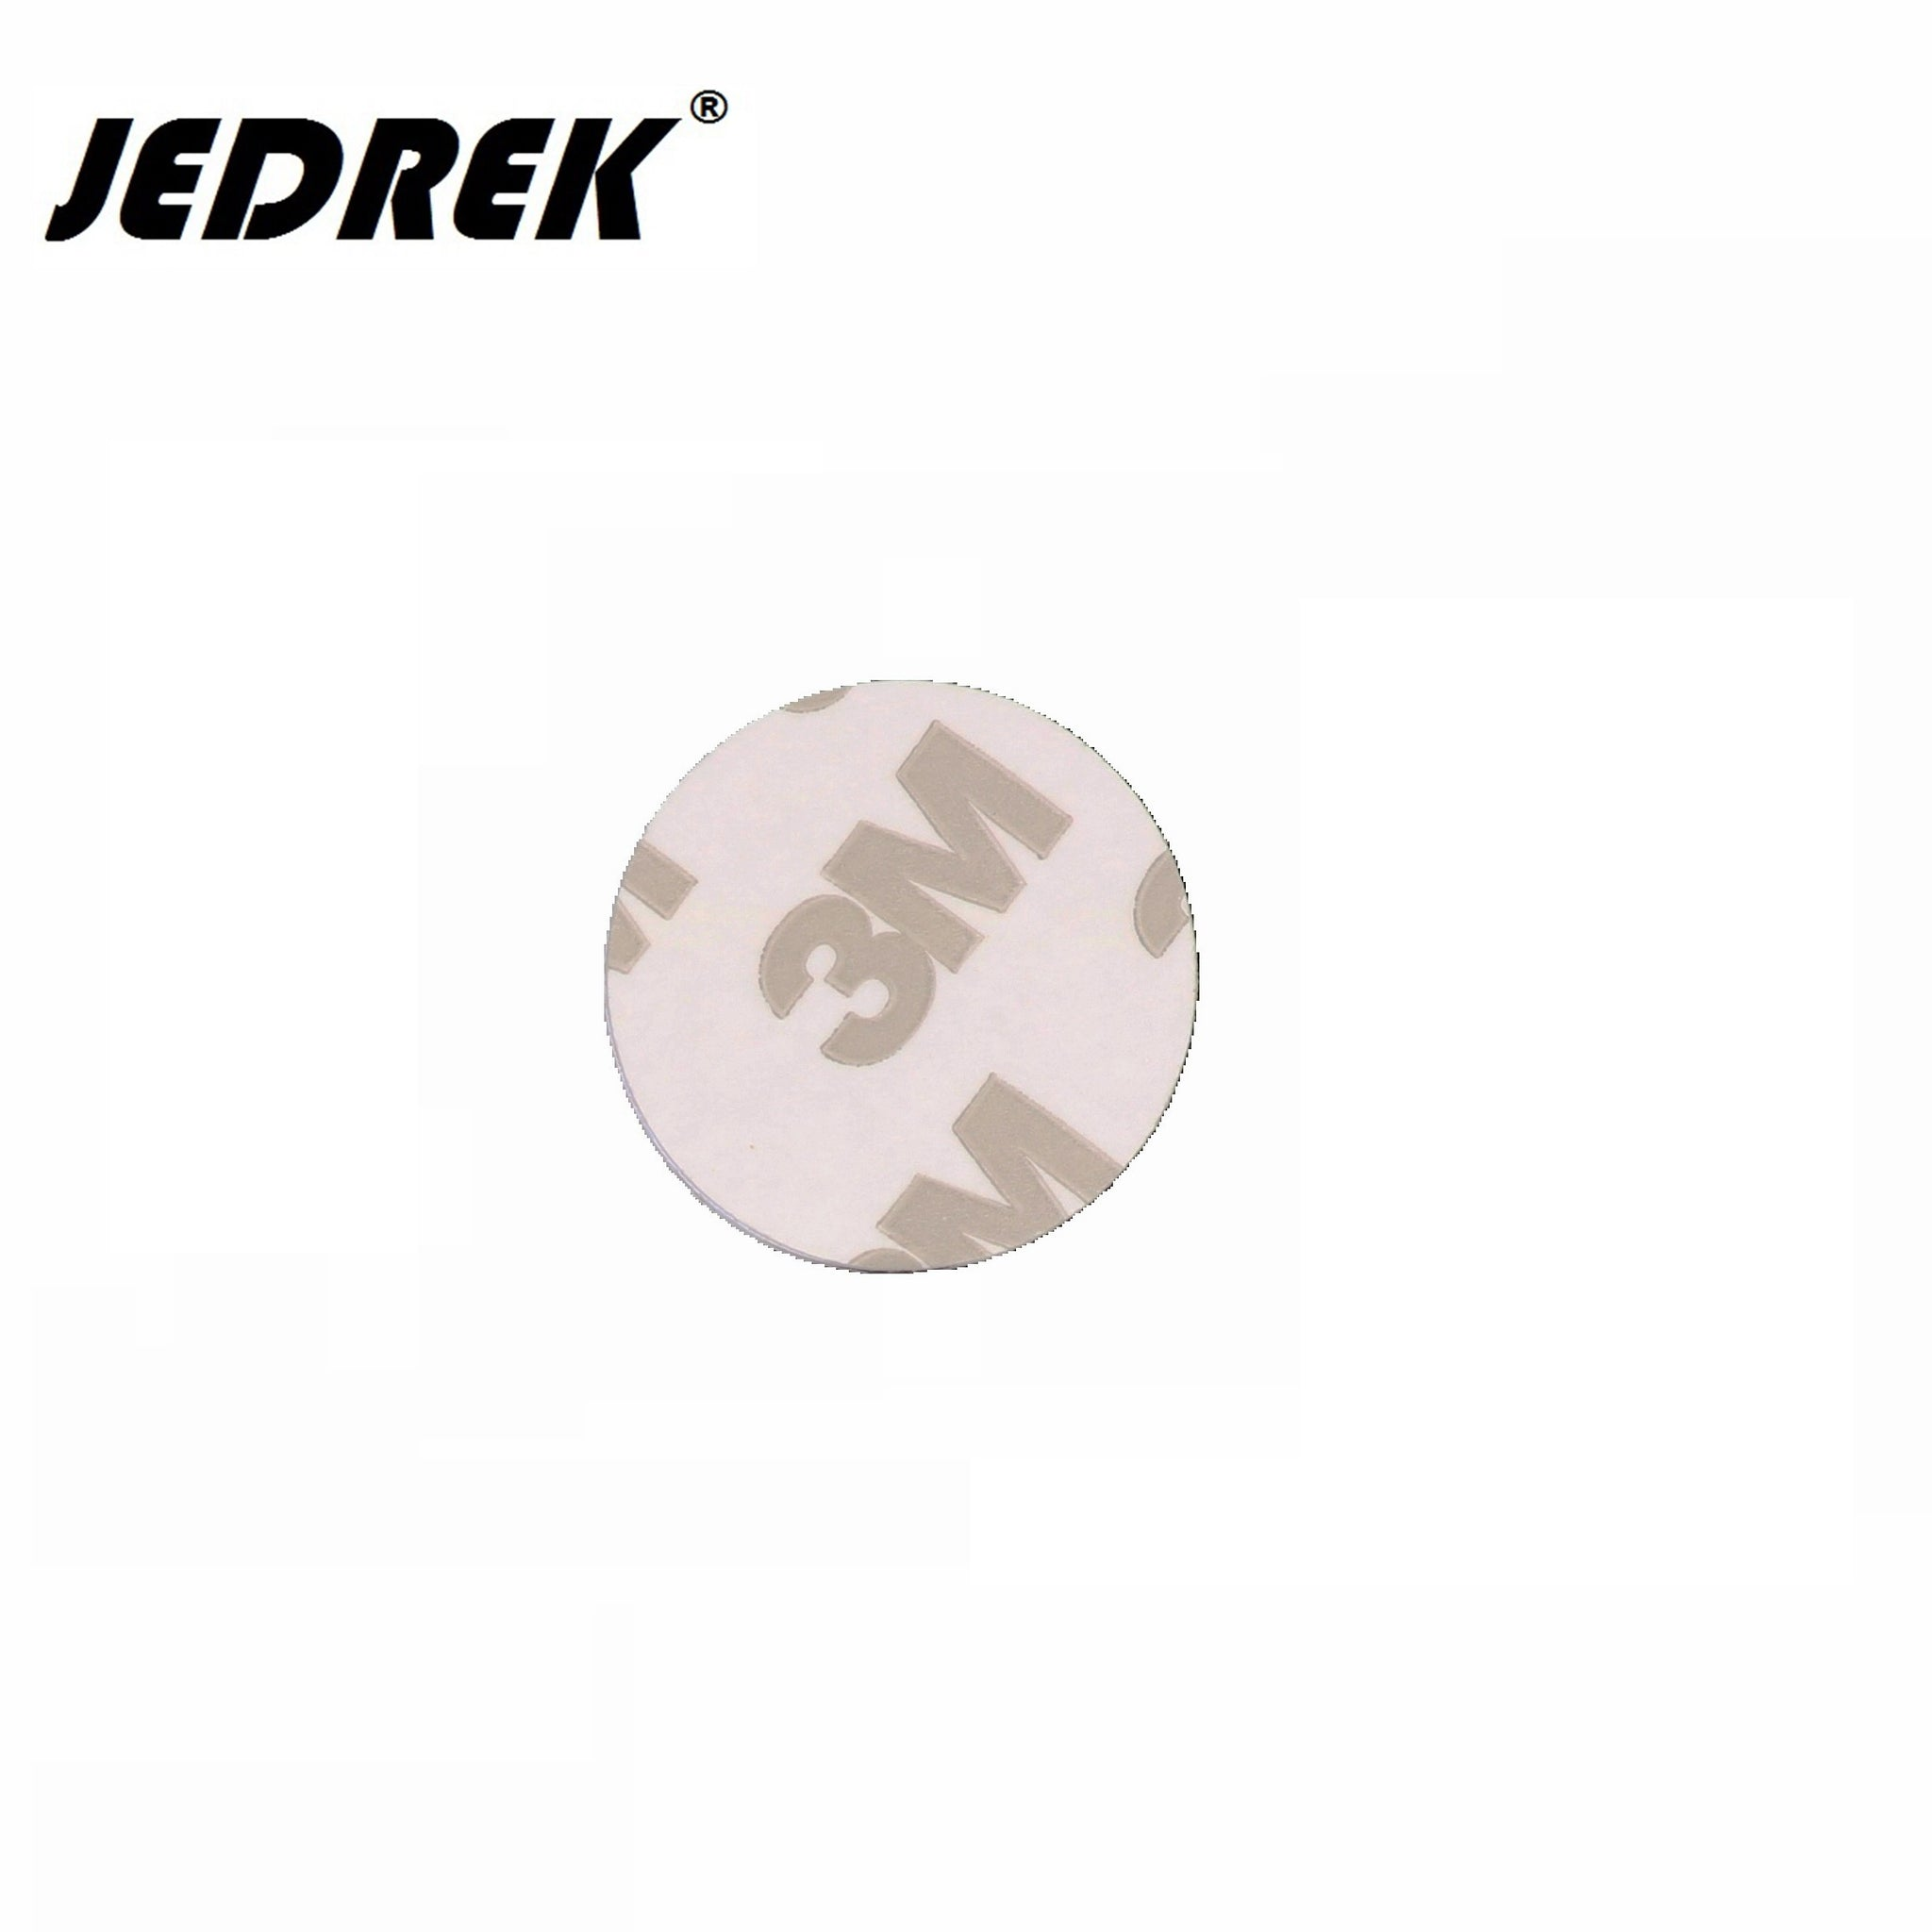 125khz Em4305 RFID 25mm Rewritable Coin with Adhensive Sticker